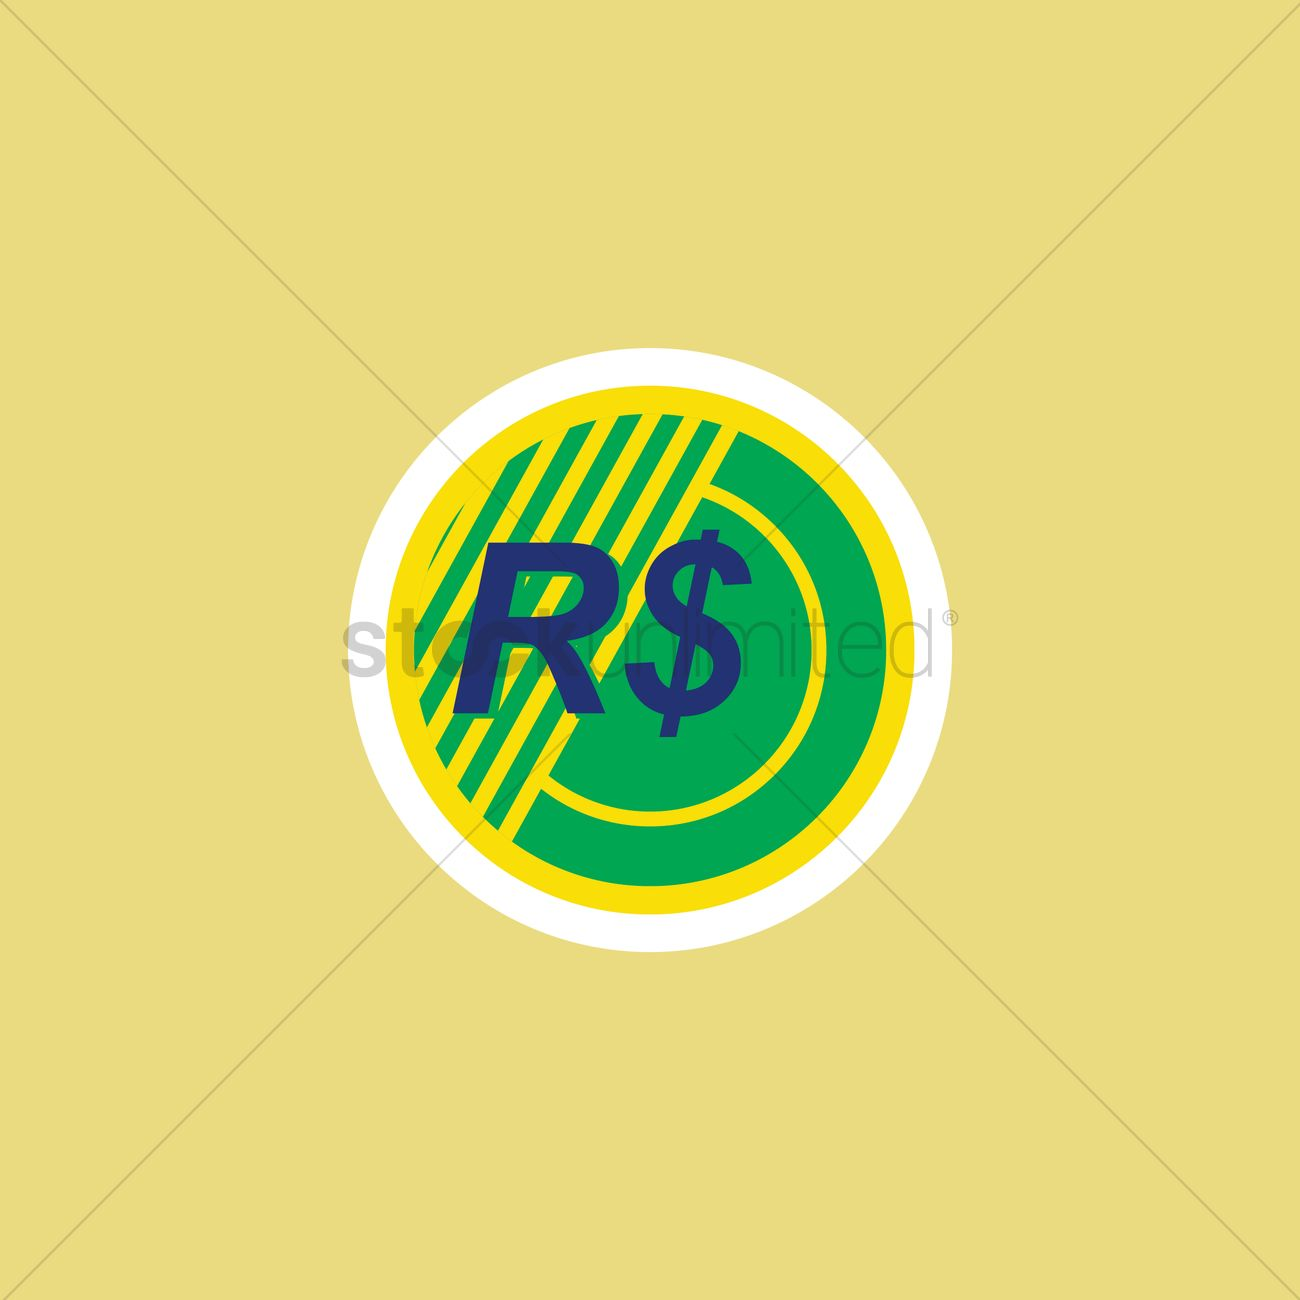 Brazilian Real Symbol Vector Image 1571628 Stockunlimited